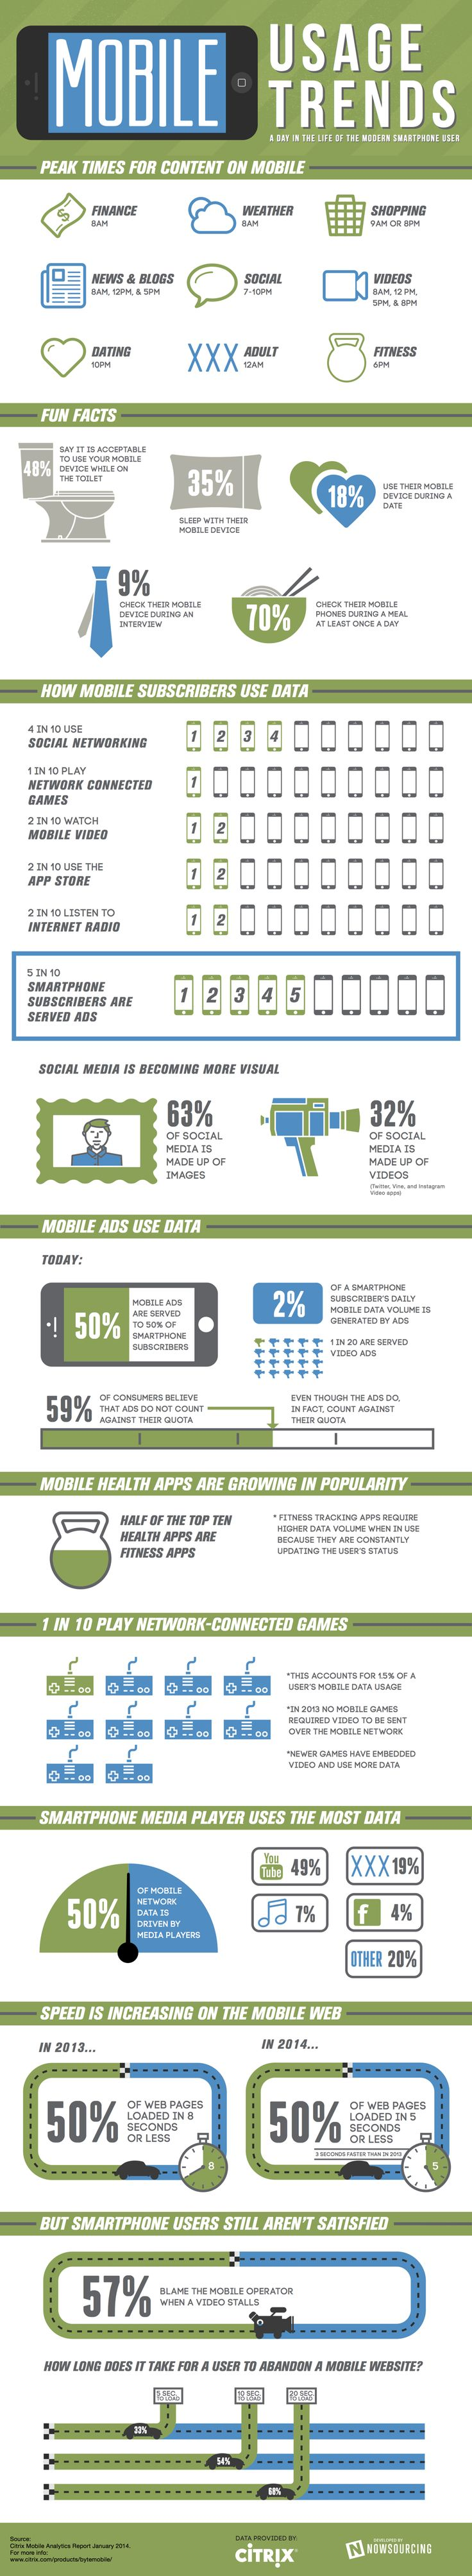 A Day in the Life of the Modern Smartphone User #Infographic